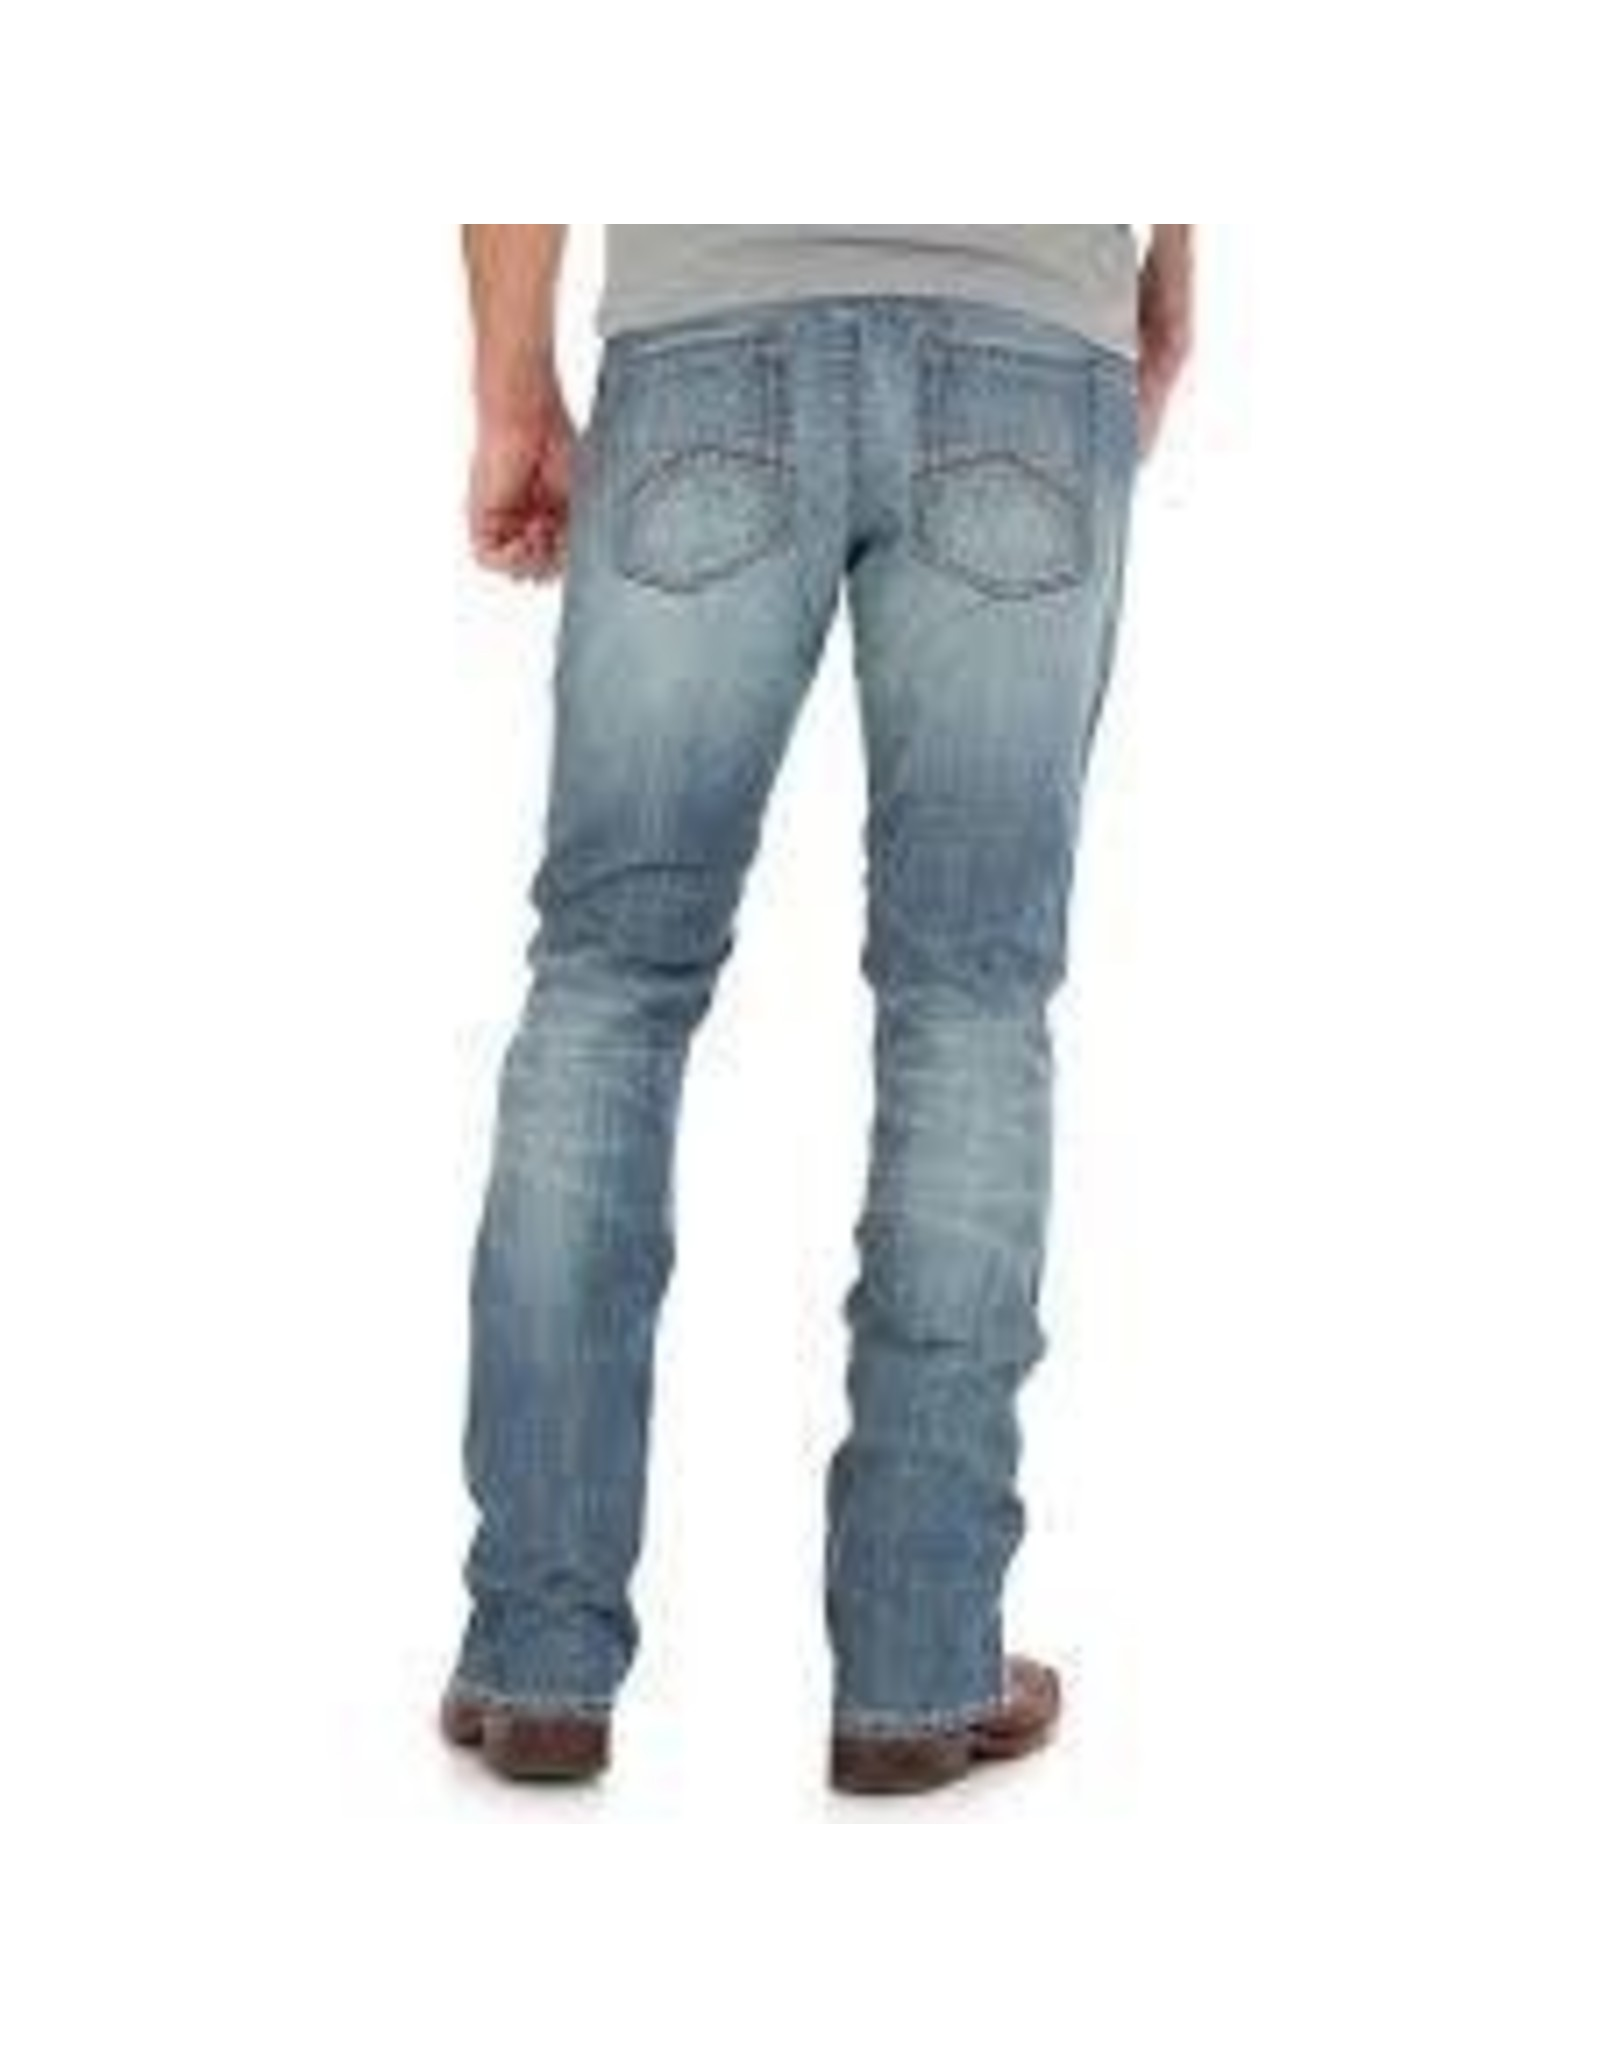 Jeans-Men Wrangler 44MWXRB Slim Straight Stretch 20X